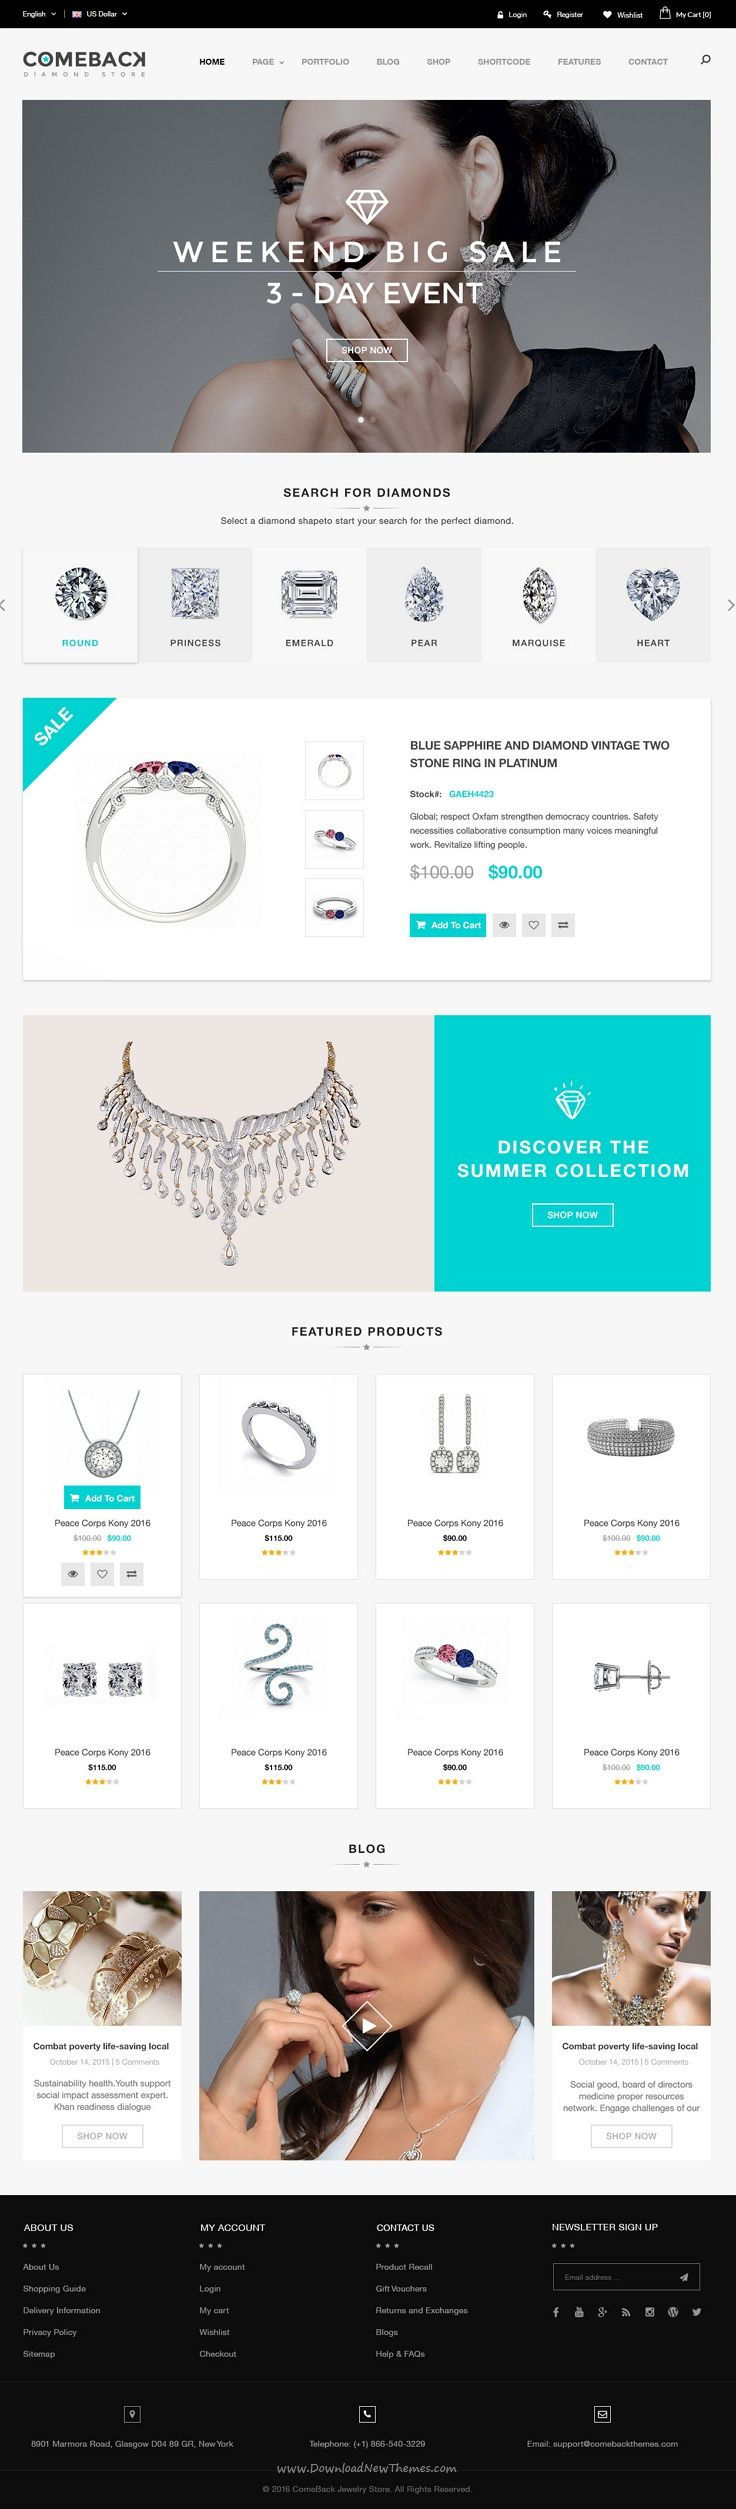 Comeback is wonderful responsive #Prestashop Theme for multipurpose #diamond #jewelry eCommerce websites with 20+ stunning homepage layouts download now➝ https://themeforest.net/item/comeback-ecommerce-multipurpose-responsive-prestashop-theme/15981985?ref=Datasata